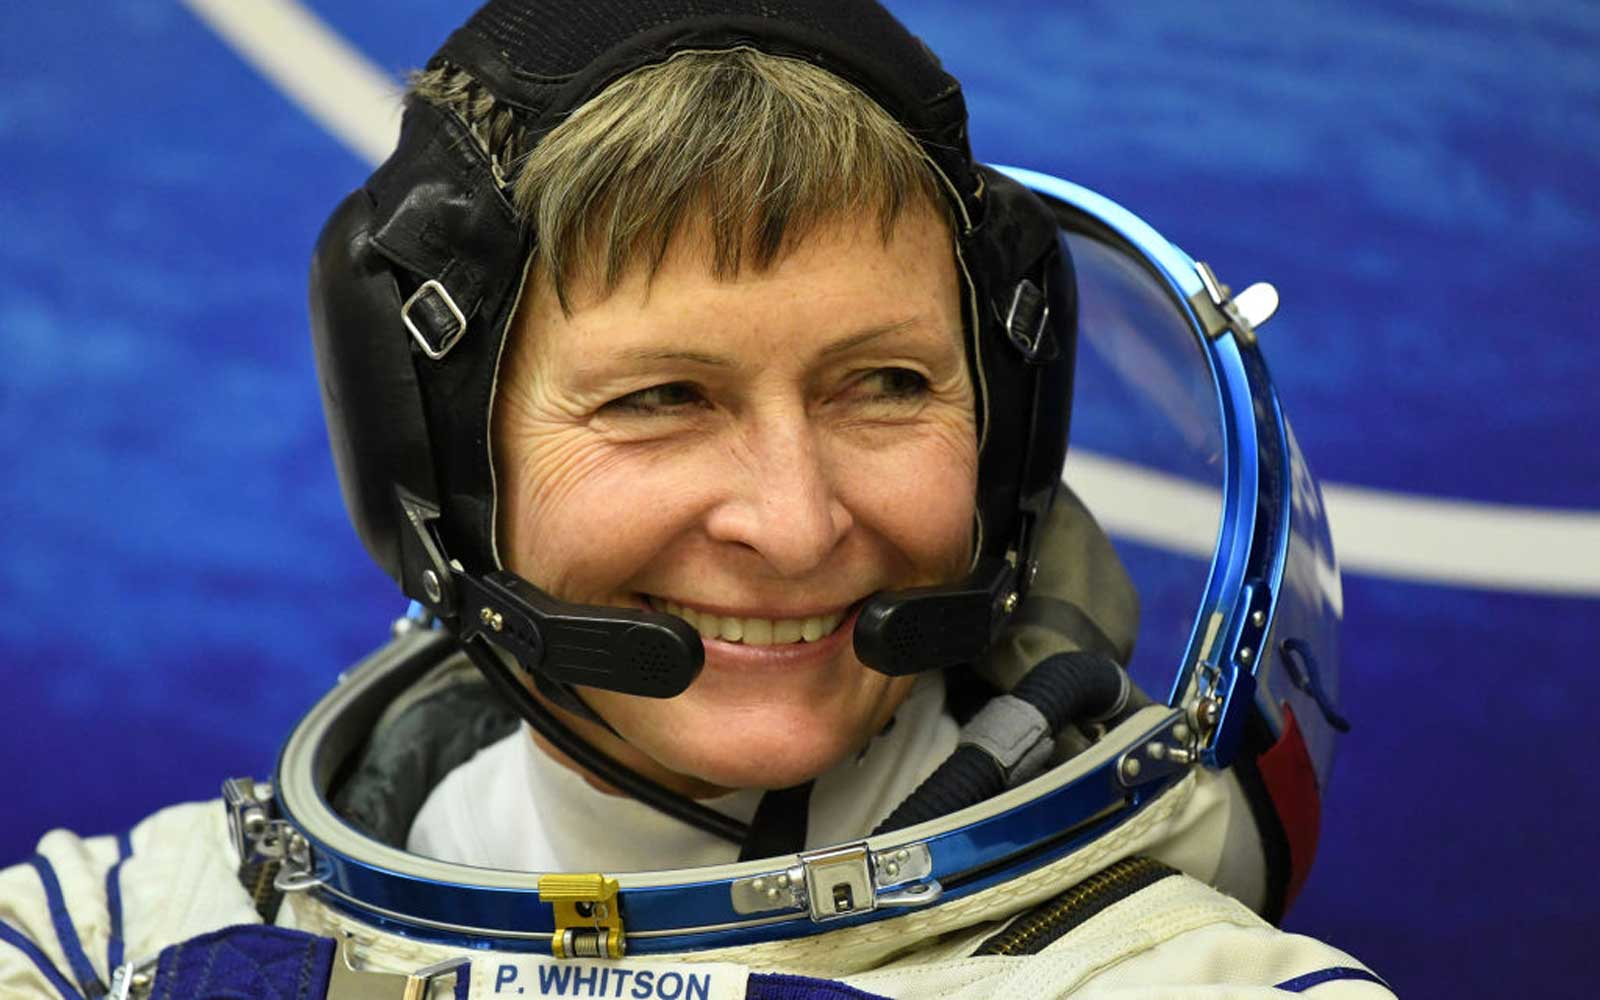 US astronaut Peggy Whitson looks on in her space suit at the Russian-leased Baikonur cosmodrome in Baikonur